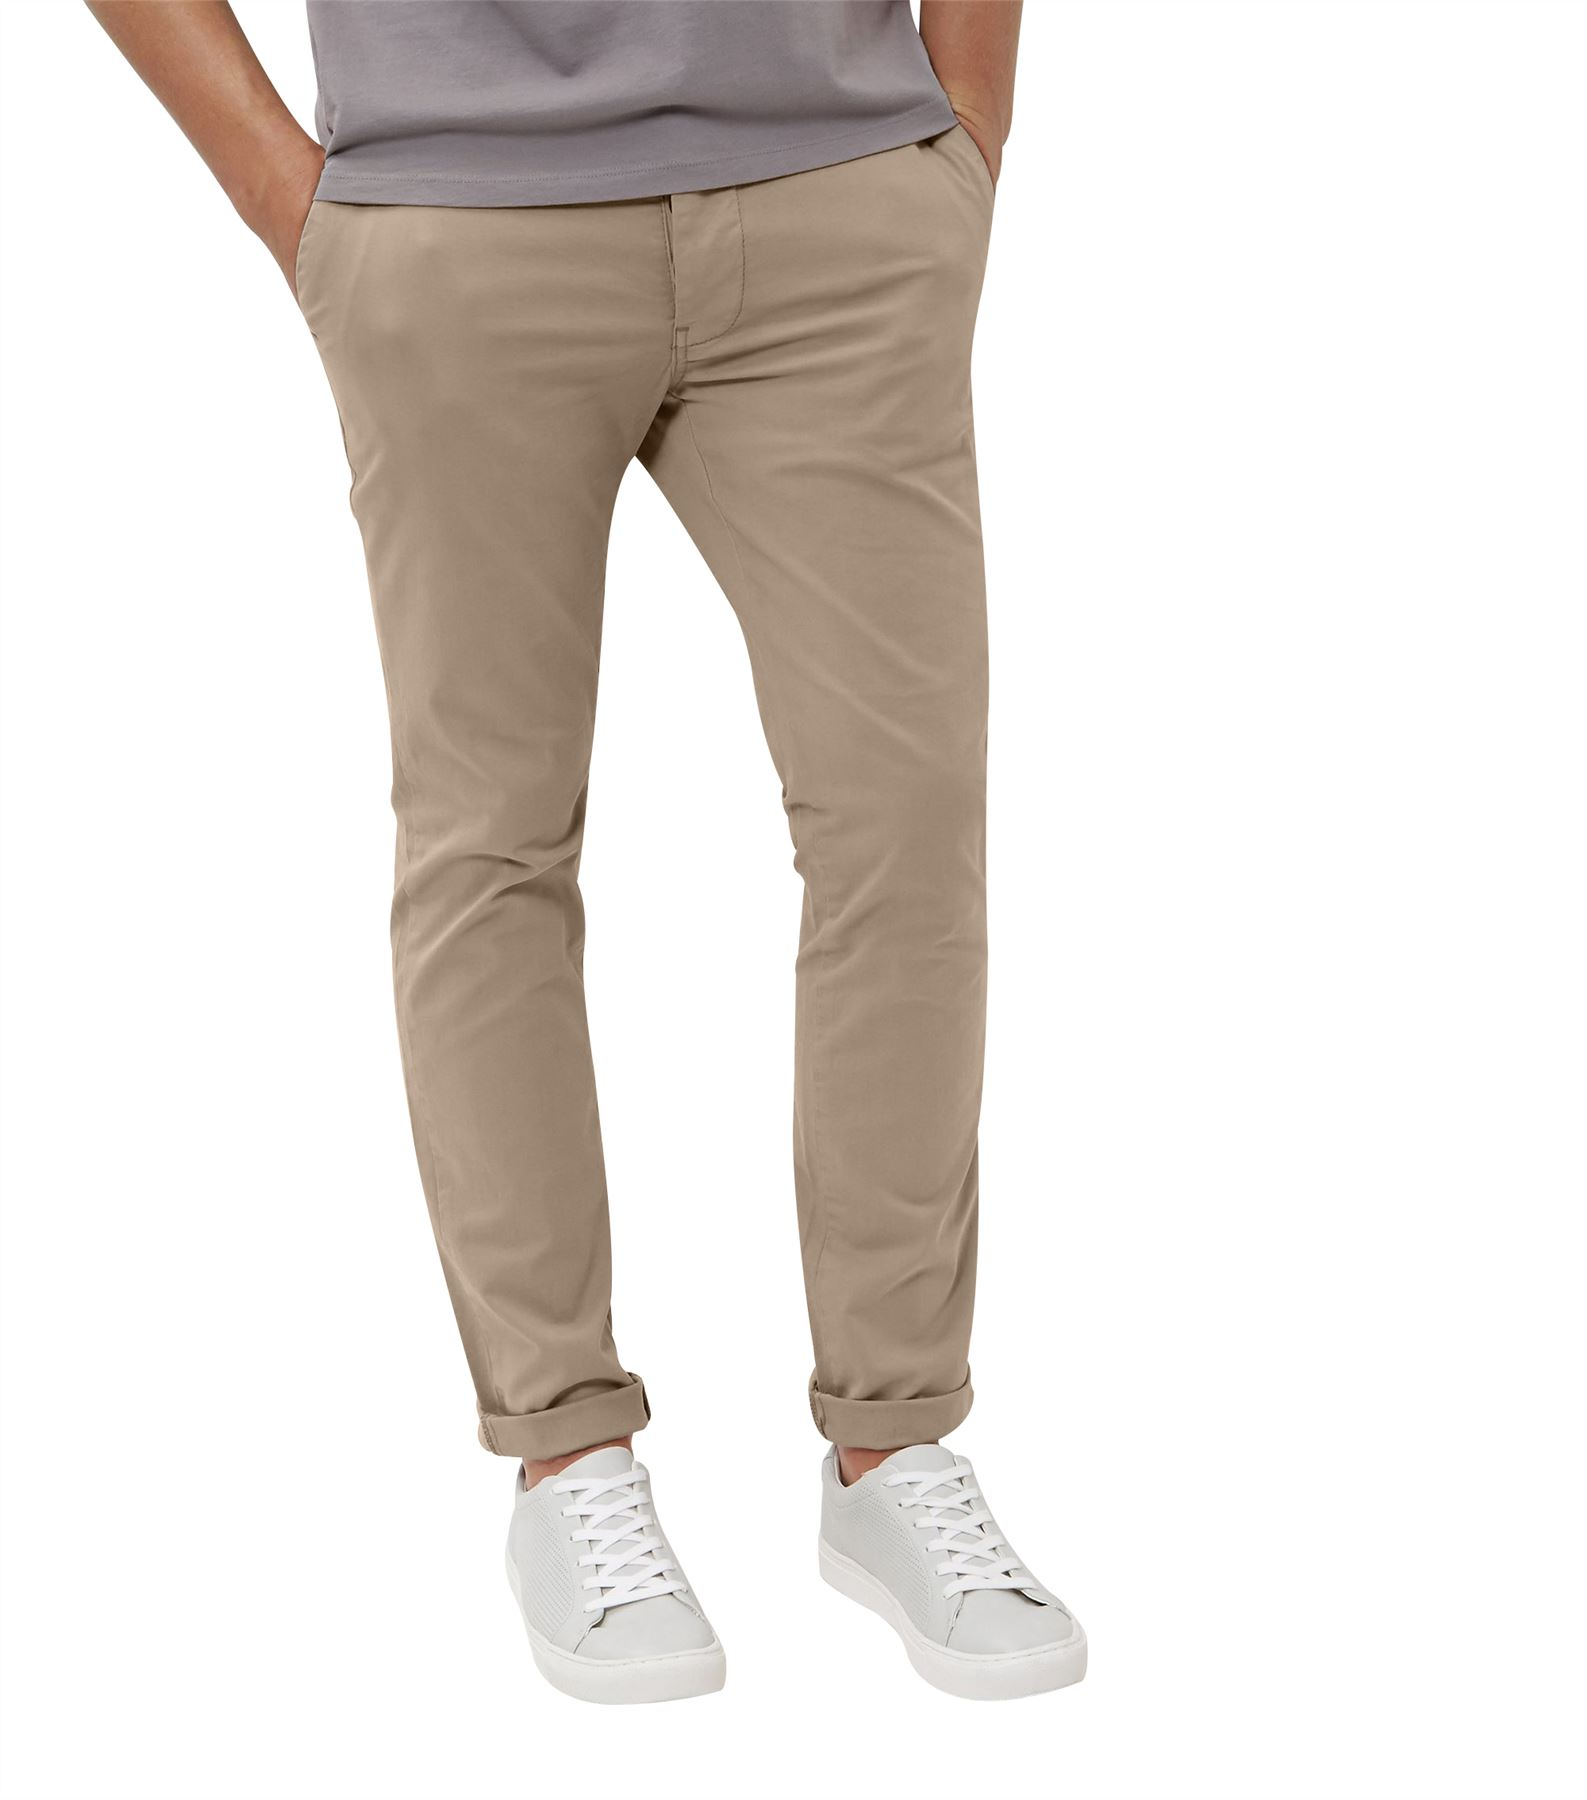 Mens Chinos Show More A great alternative to the everyday pair of jeans, New Look's line of men's chinos are the perfect bridge between smart work trousers and casual after-hours outfit.